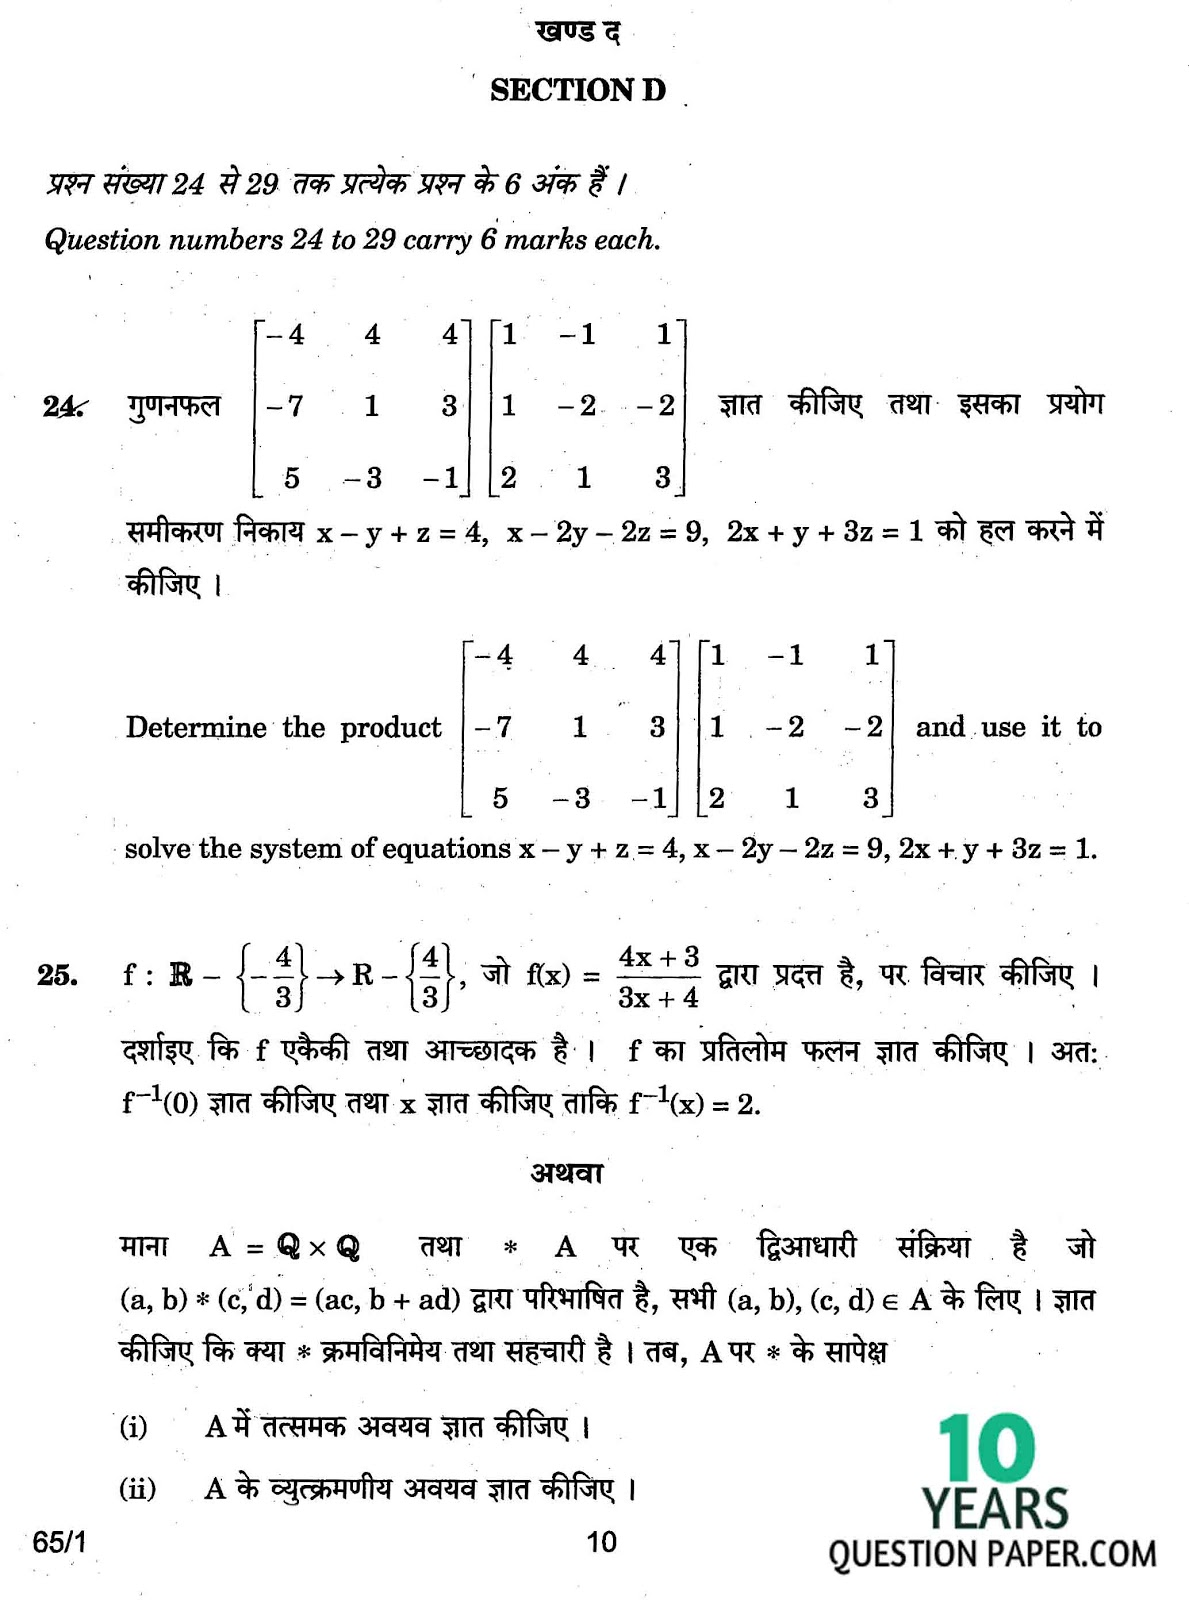 CBSE class 12th 2017 Mathematics question paper